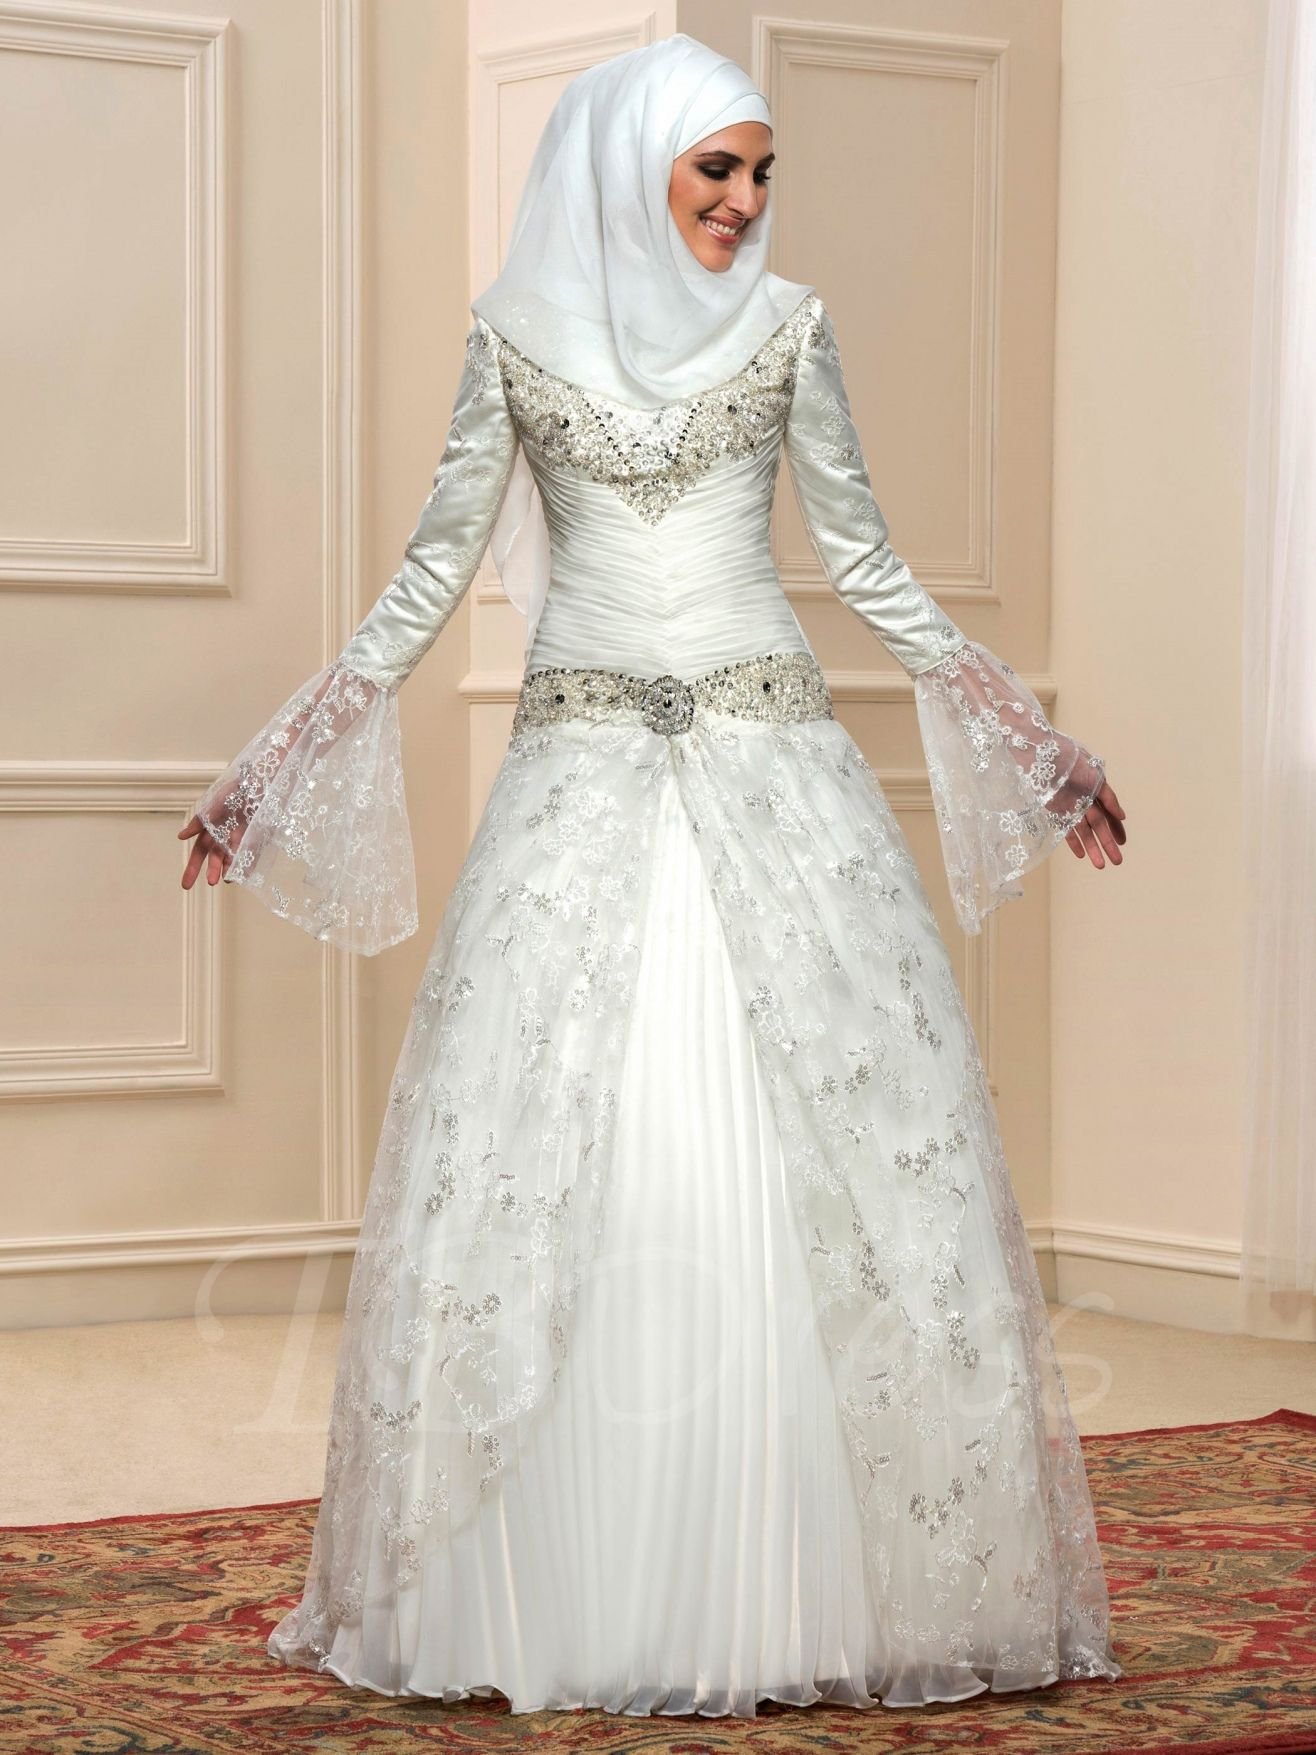 55+ Arabic Wedding Dresses - Country Dresses for Weddings Check more ...